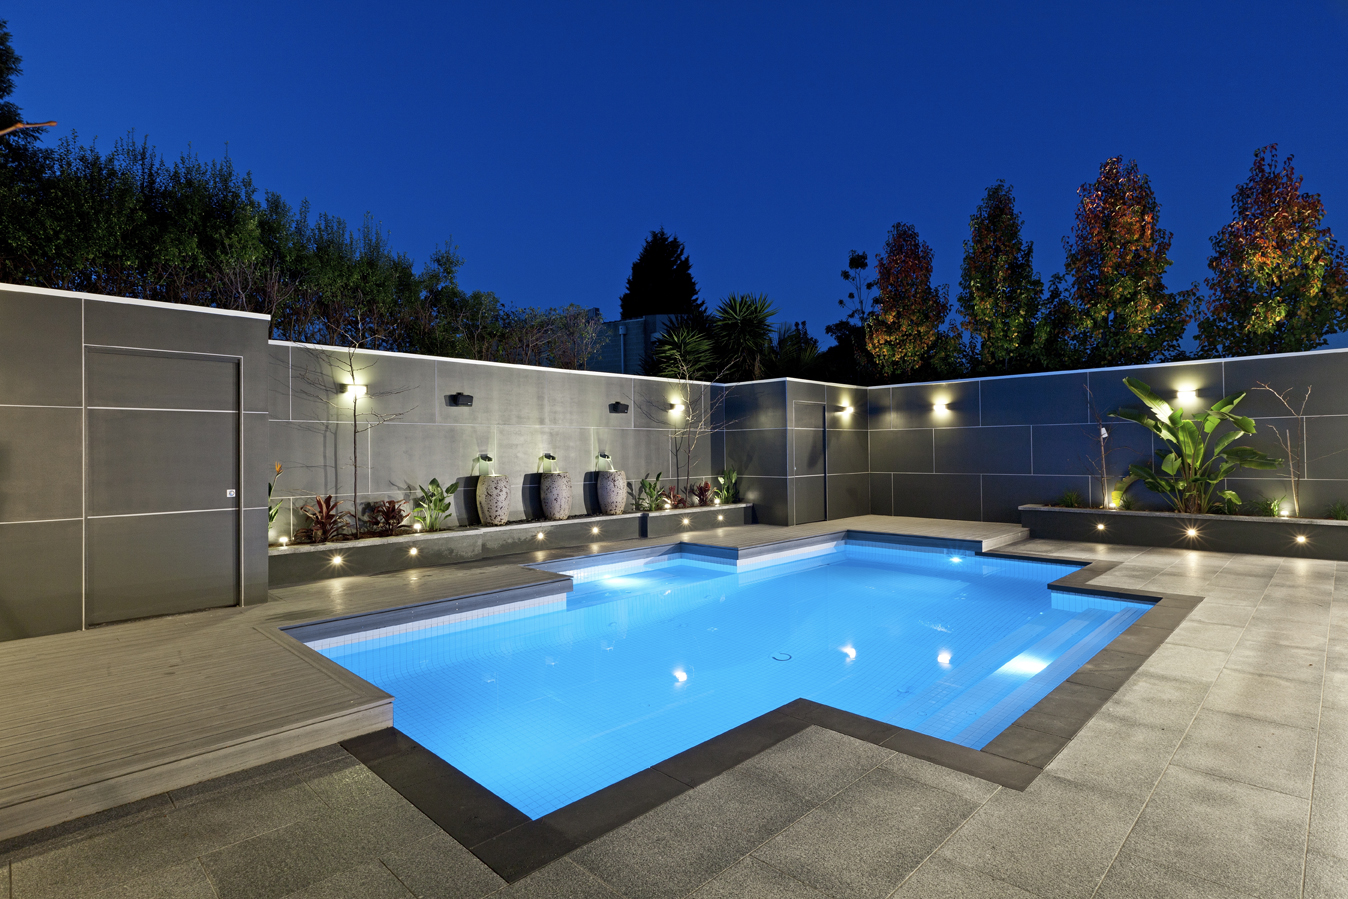 Backyard landscaping ideas swimming pool design for Pool design pictures